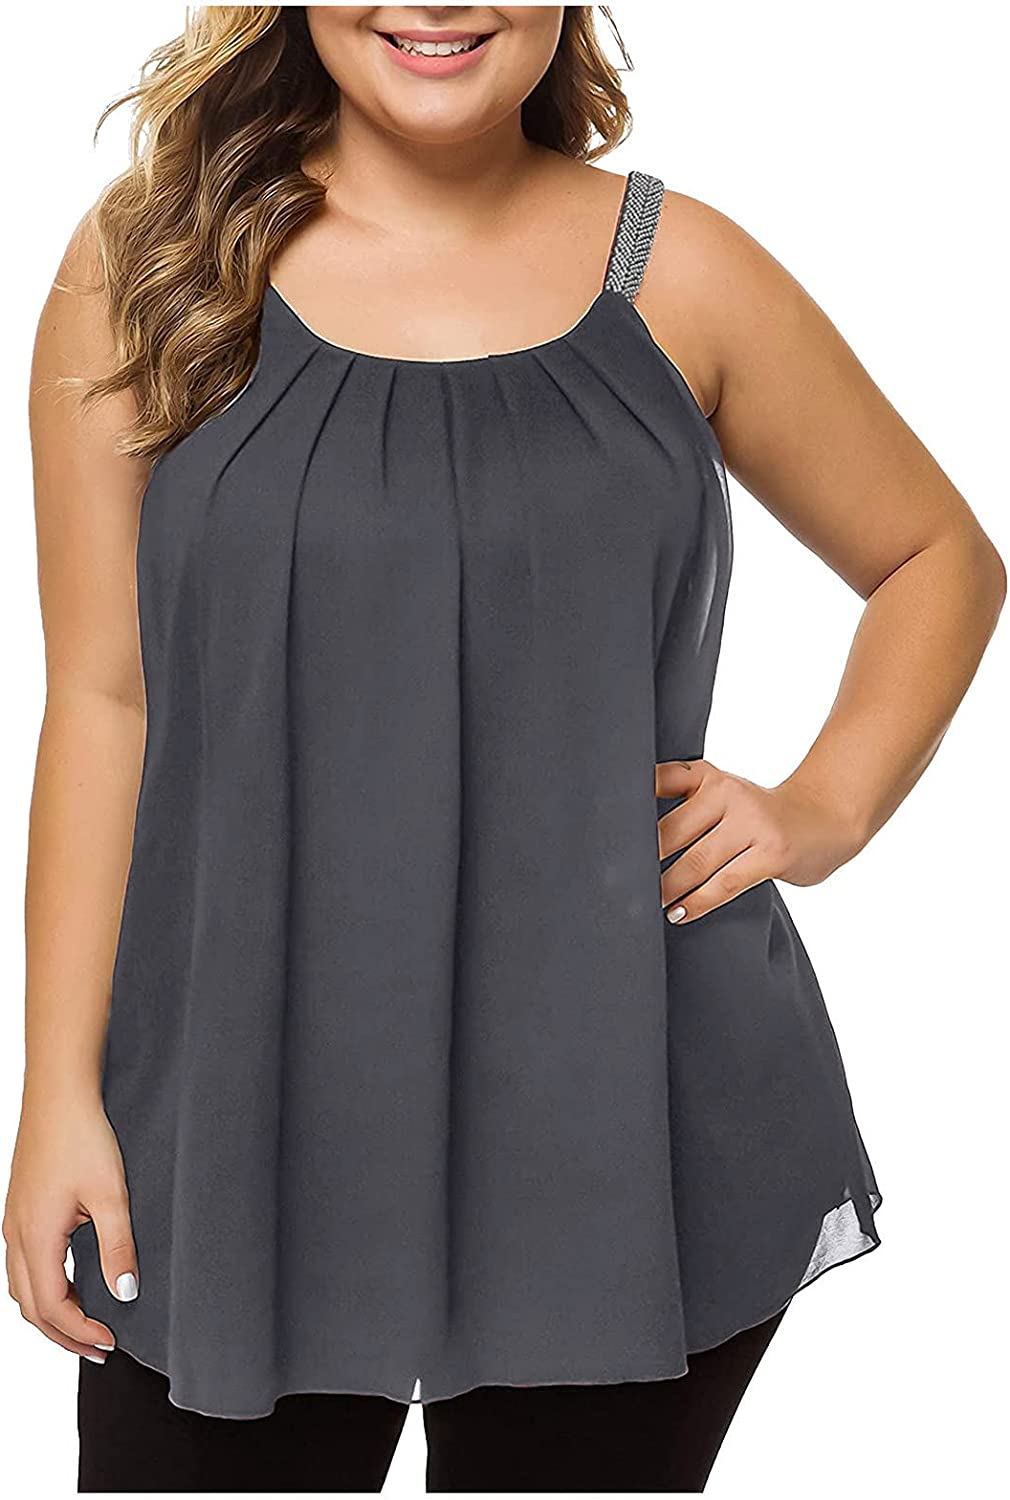 Womens Summer Tops Plus Size,Women's Plus Size Cami Casual Pleated Chiffon Tank Top with Beaded Strap